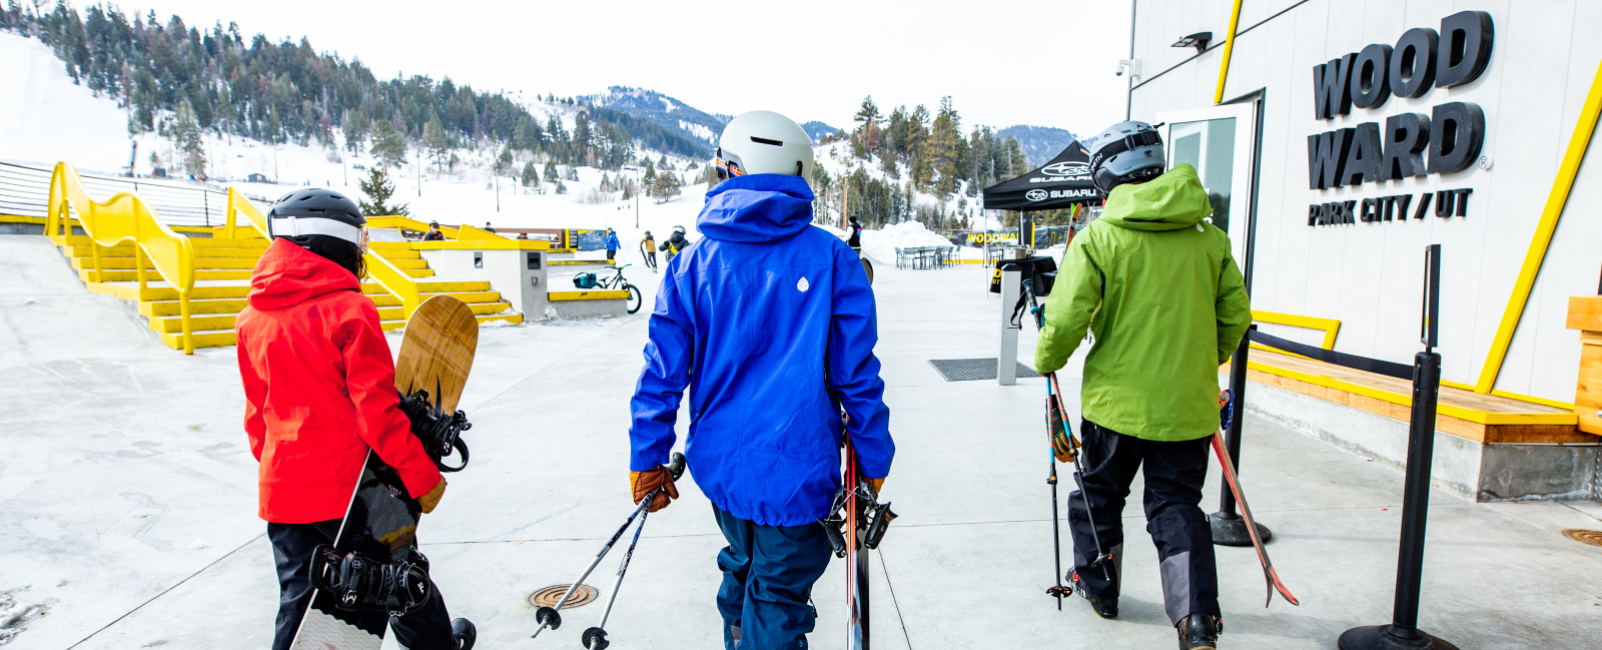 Woodward Park City Isn't Just for Pros